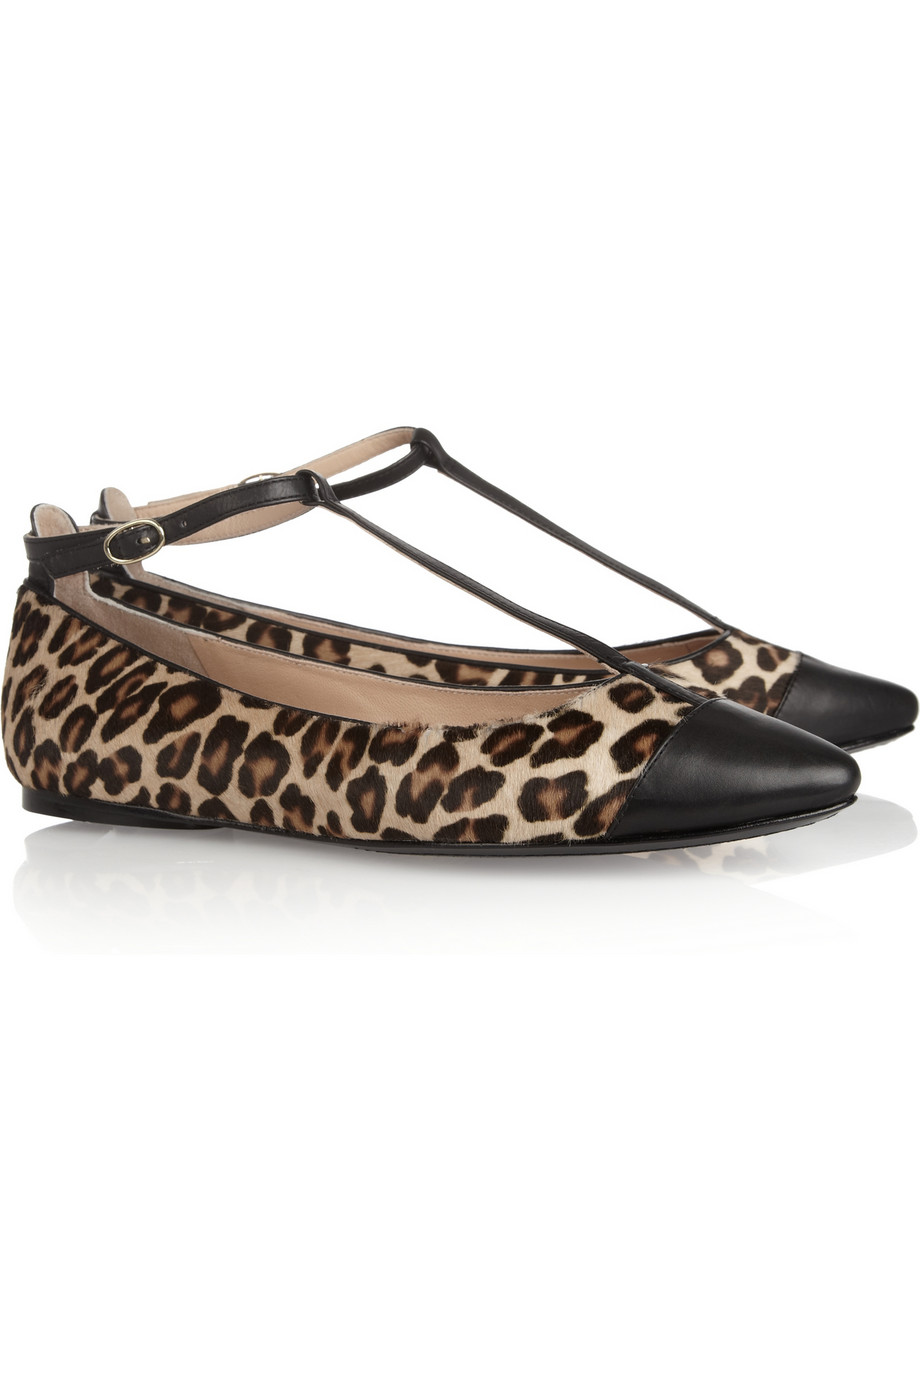 Belle Sigerson Morrison Leopard-print calf hair ballet flats - 48% Off Now at THE OUTNET